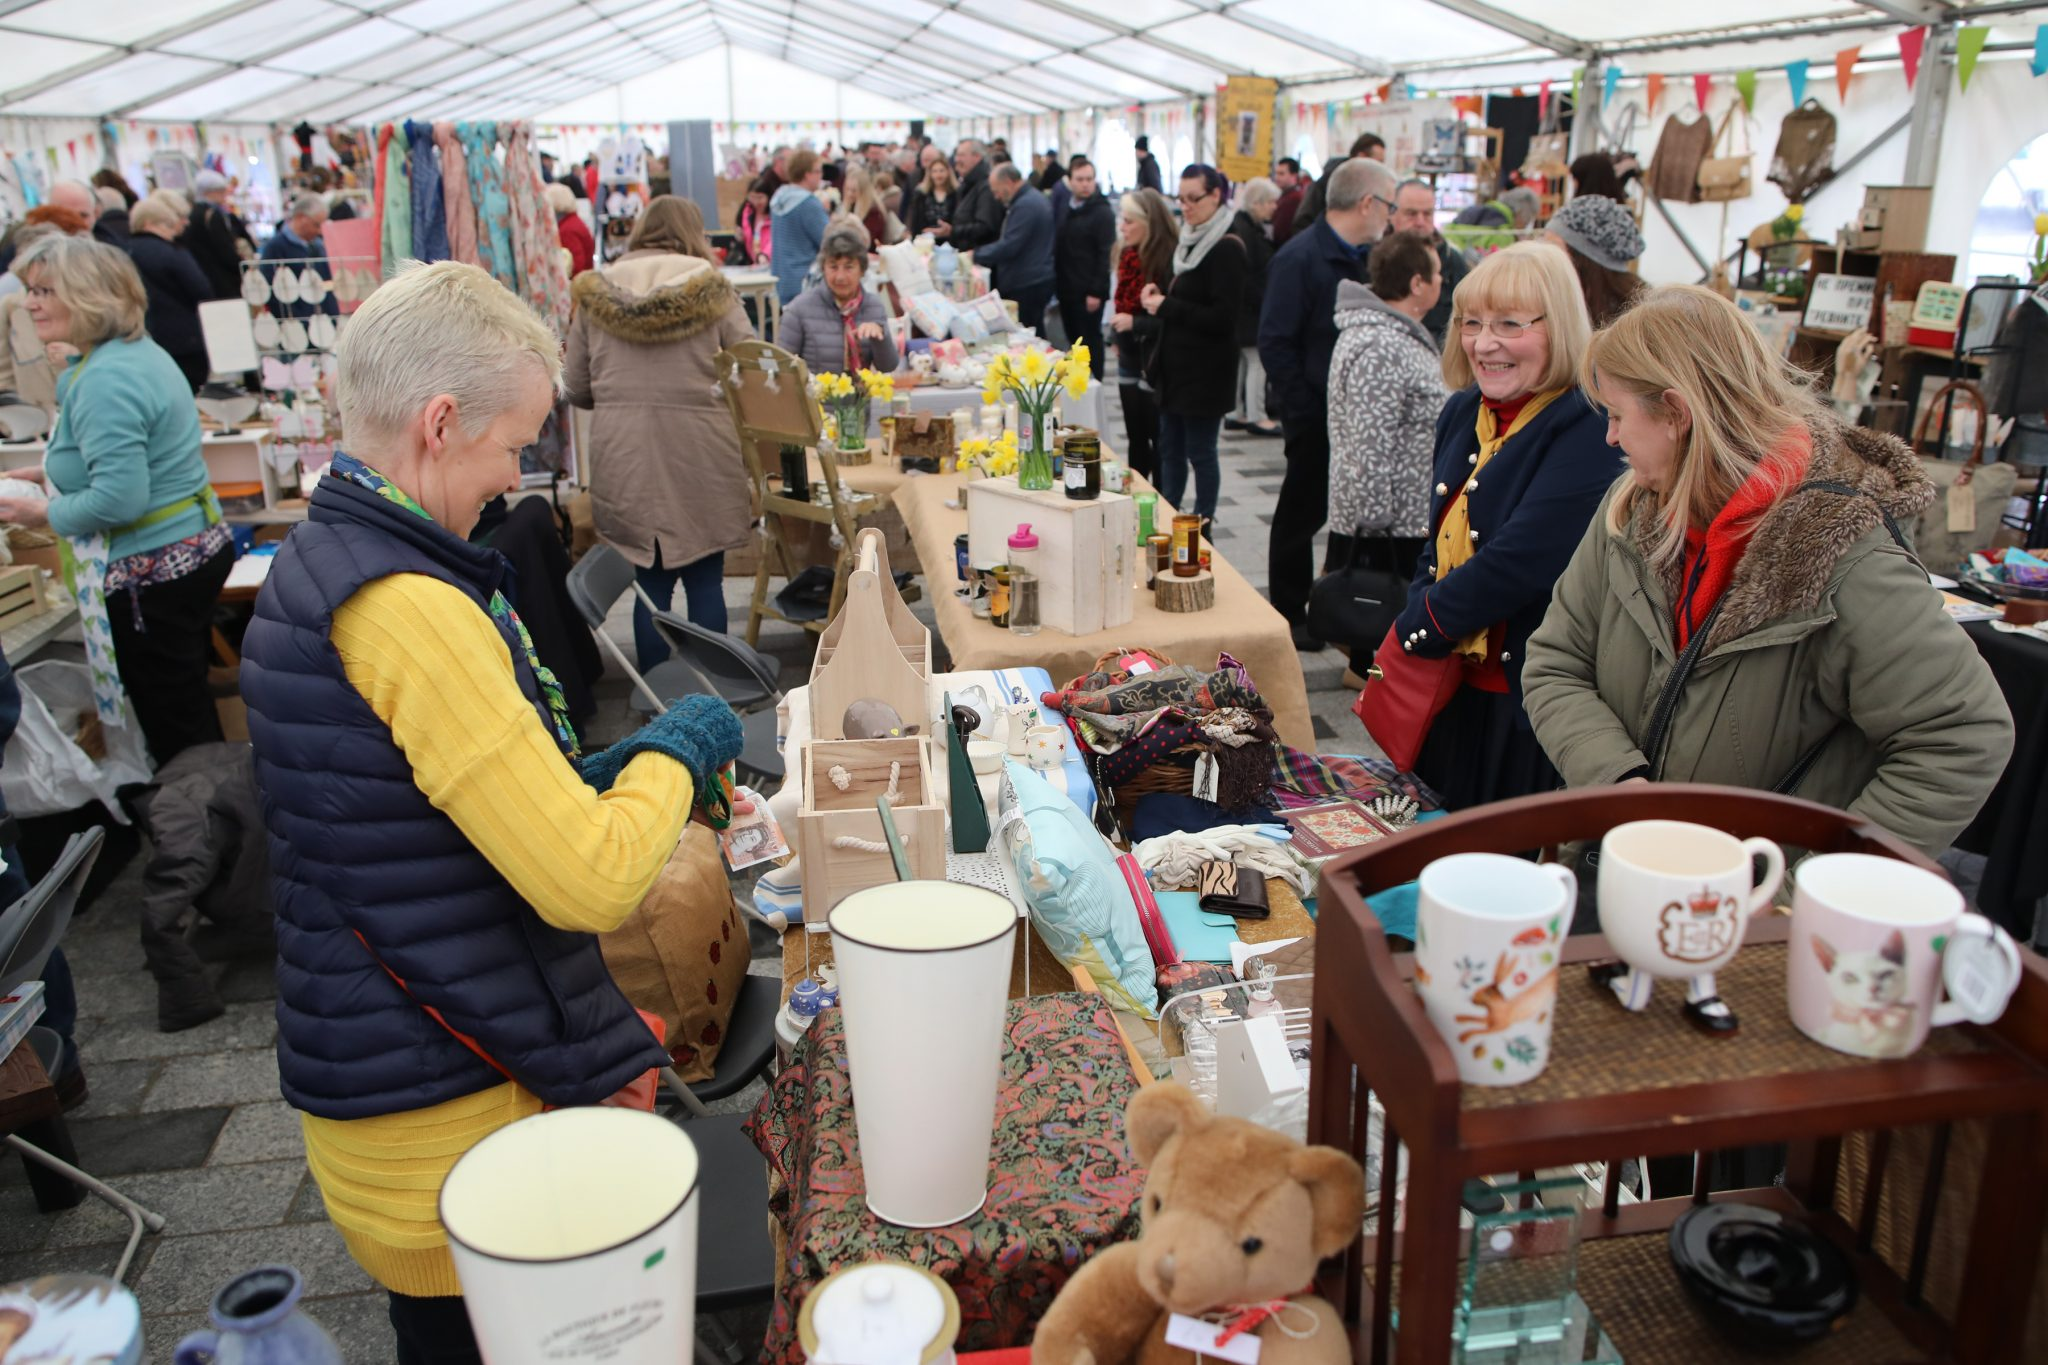 traders and shoppers inside the marquee at Stockton Chic Antique fair on 7th April 2018